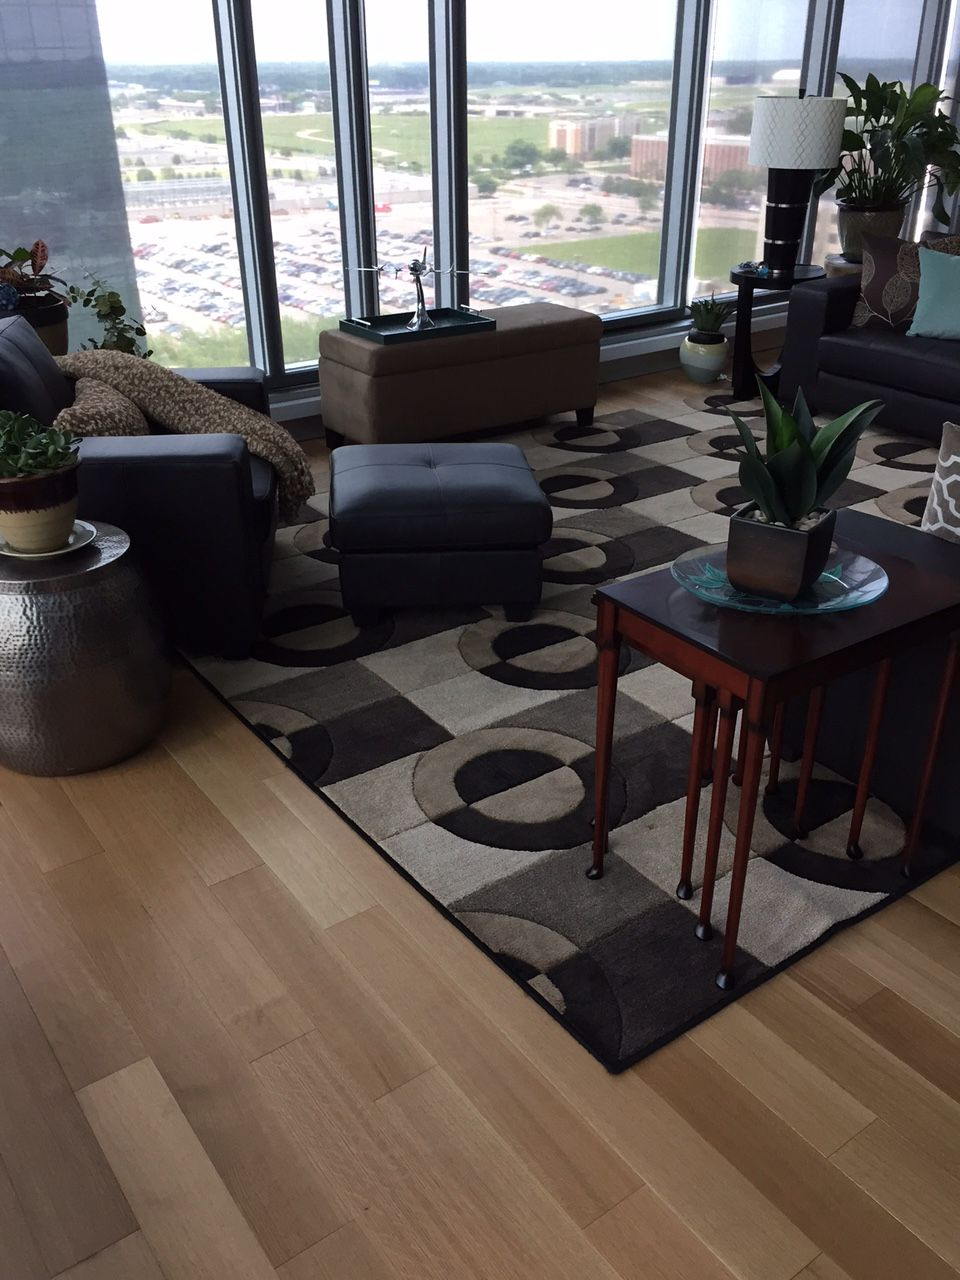 Brian Jacobs of BEJACOBS INTERIORS did a marvelous job in installing the  hardwood floor. Flooring